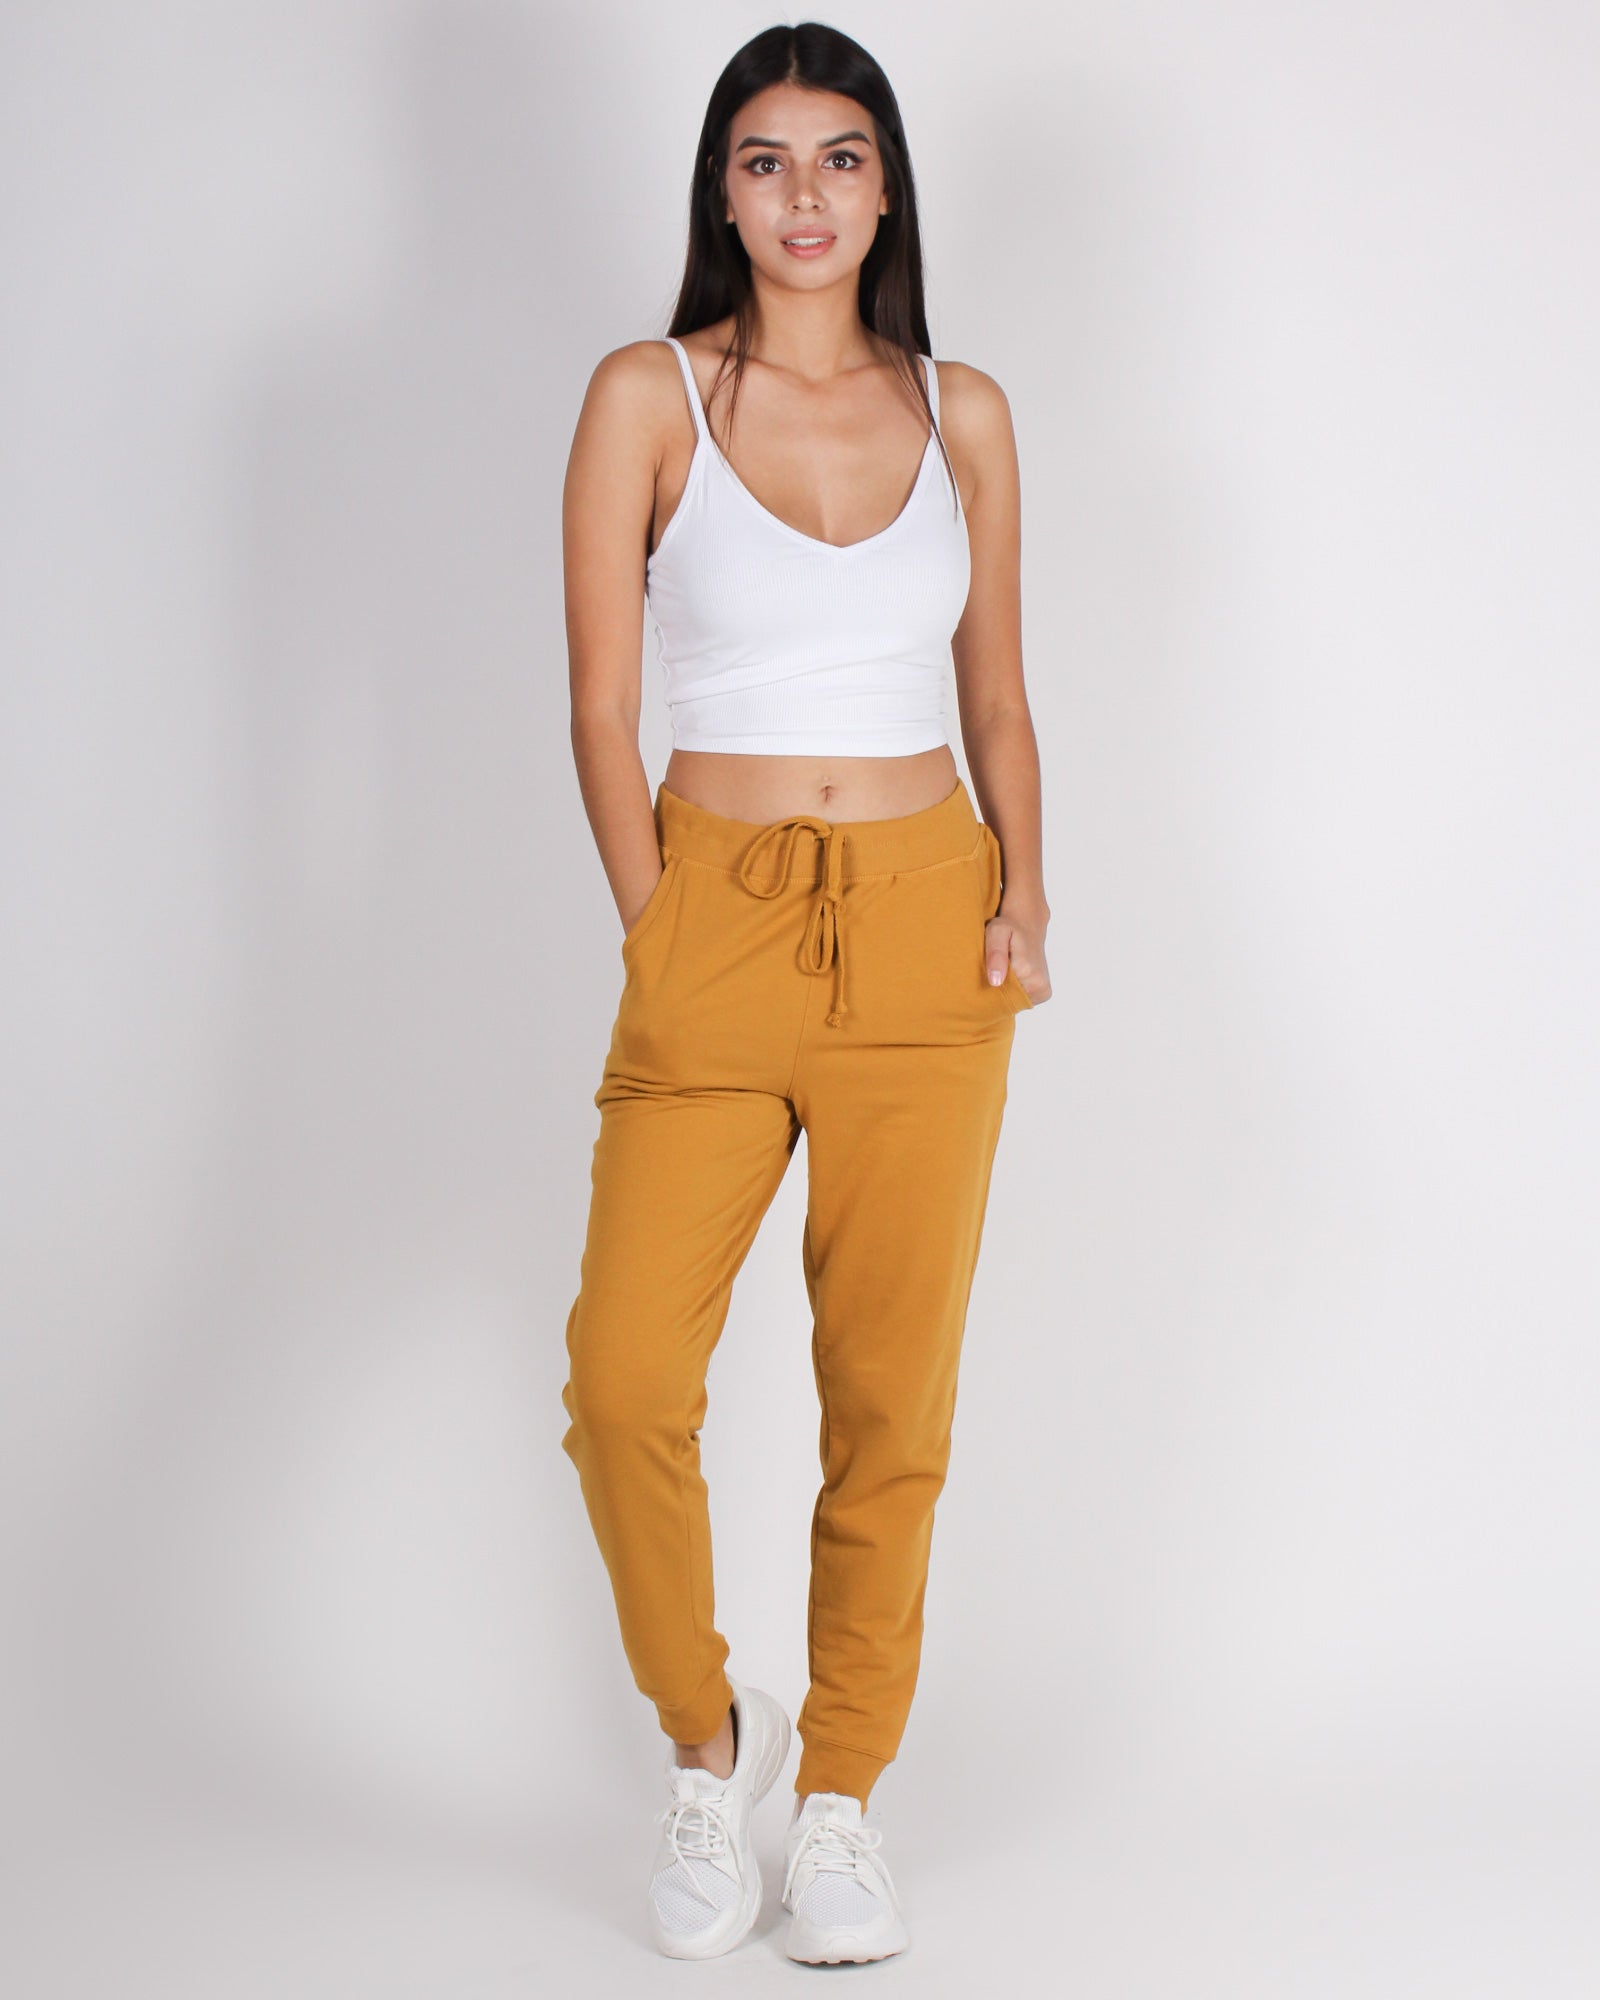 Fashion Q Shop Q Bombastic Love Jogger Pants (Mustard) 65776